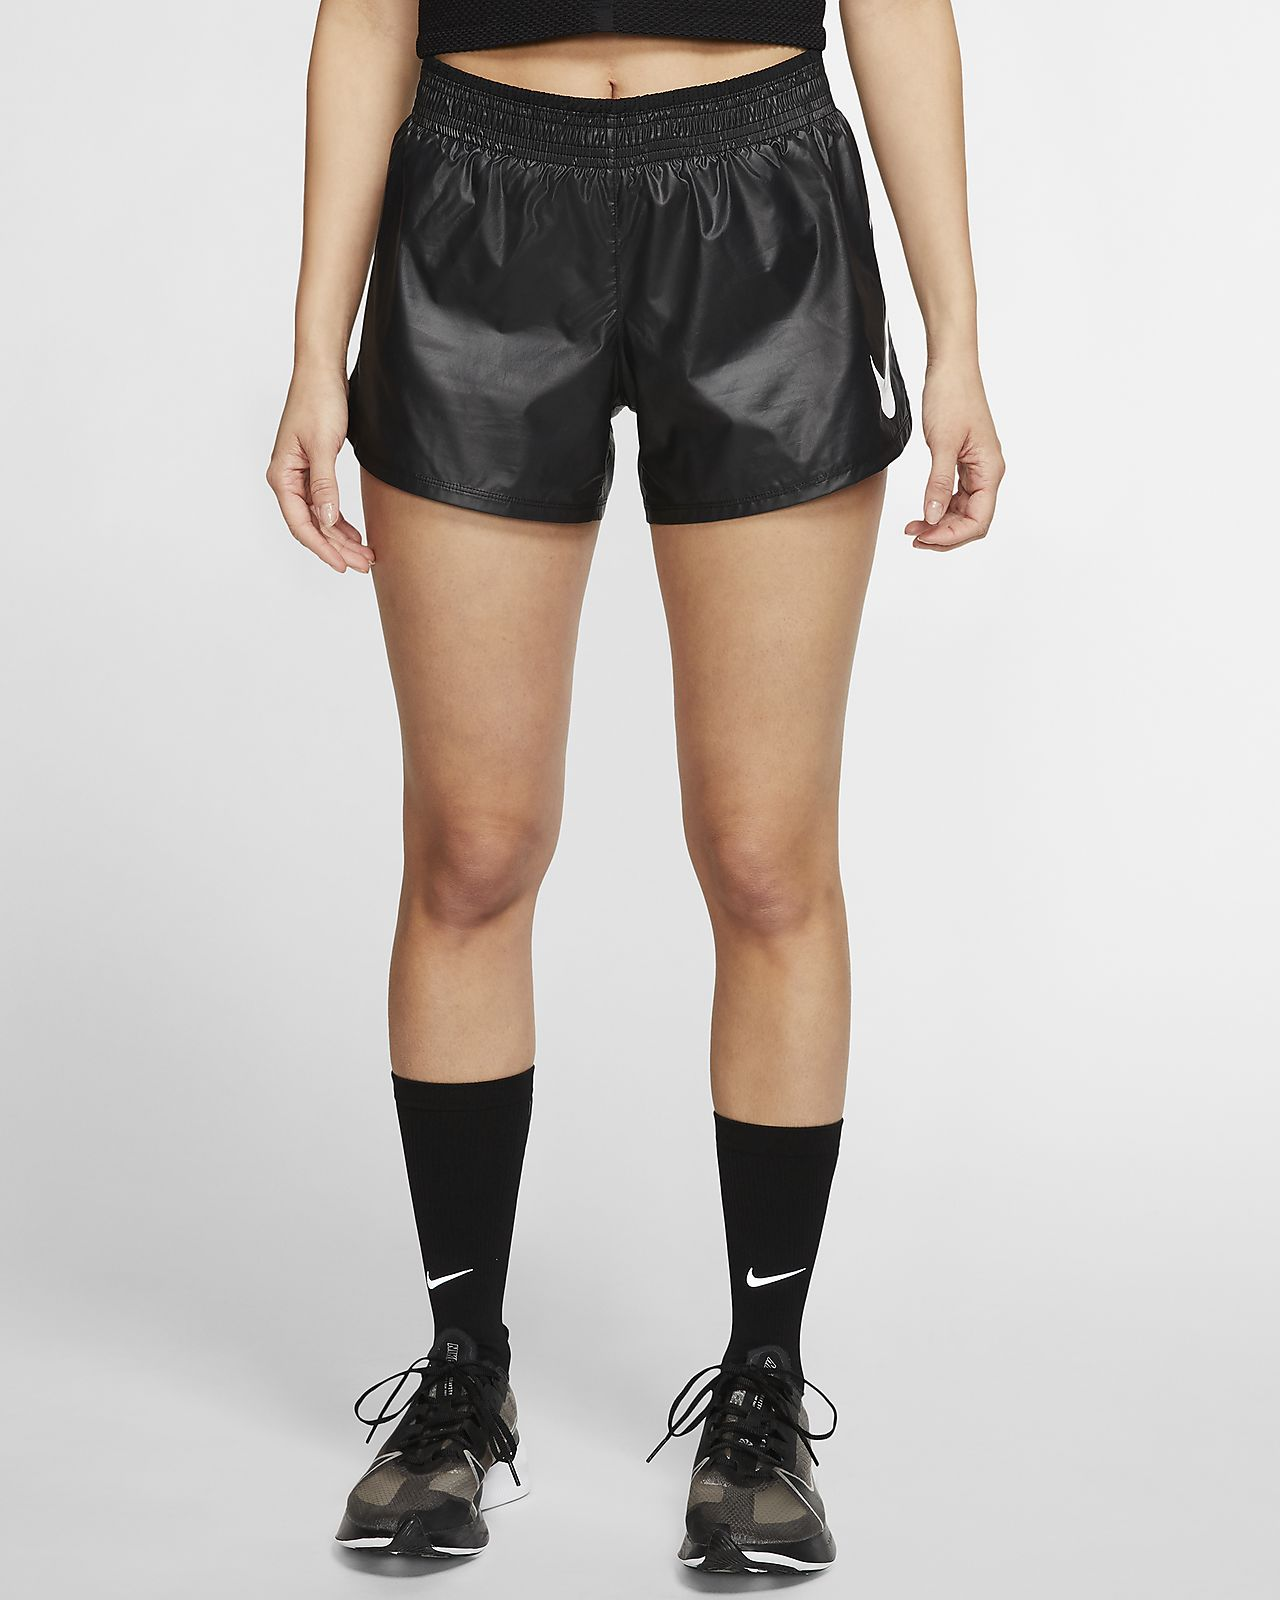 Nike Women's Running Shorts